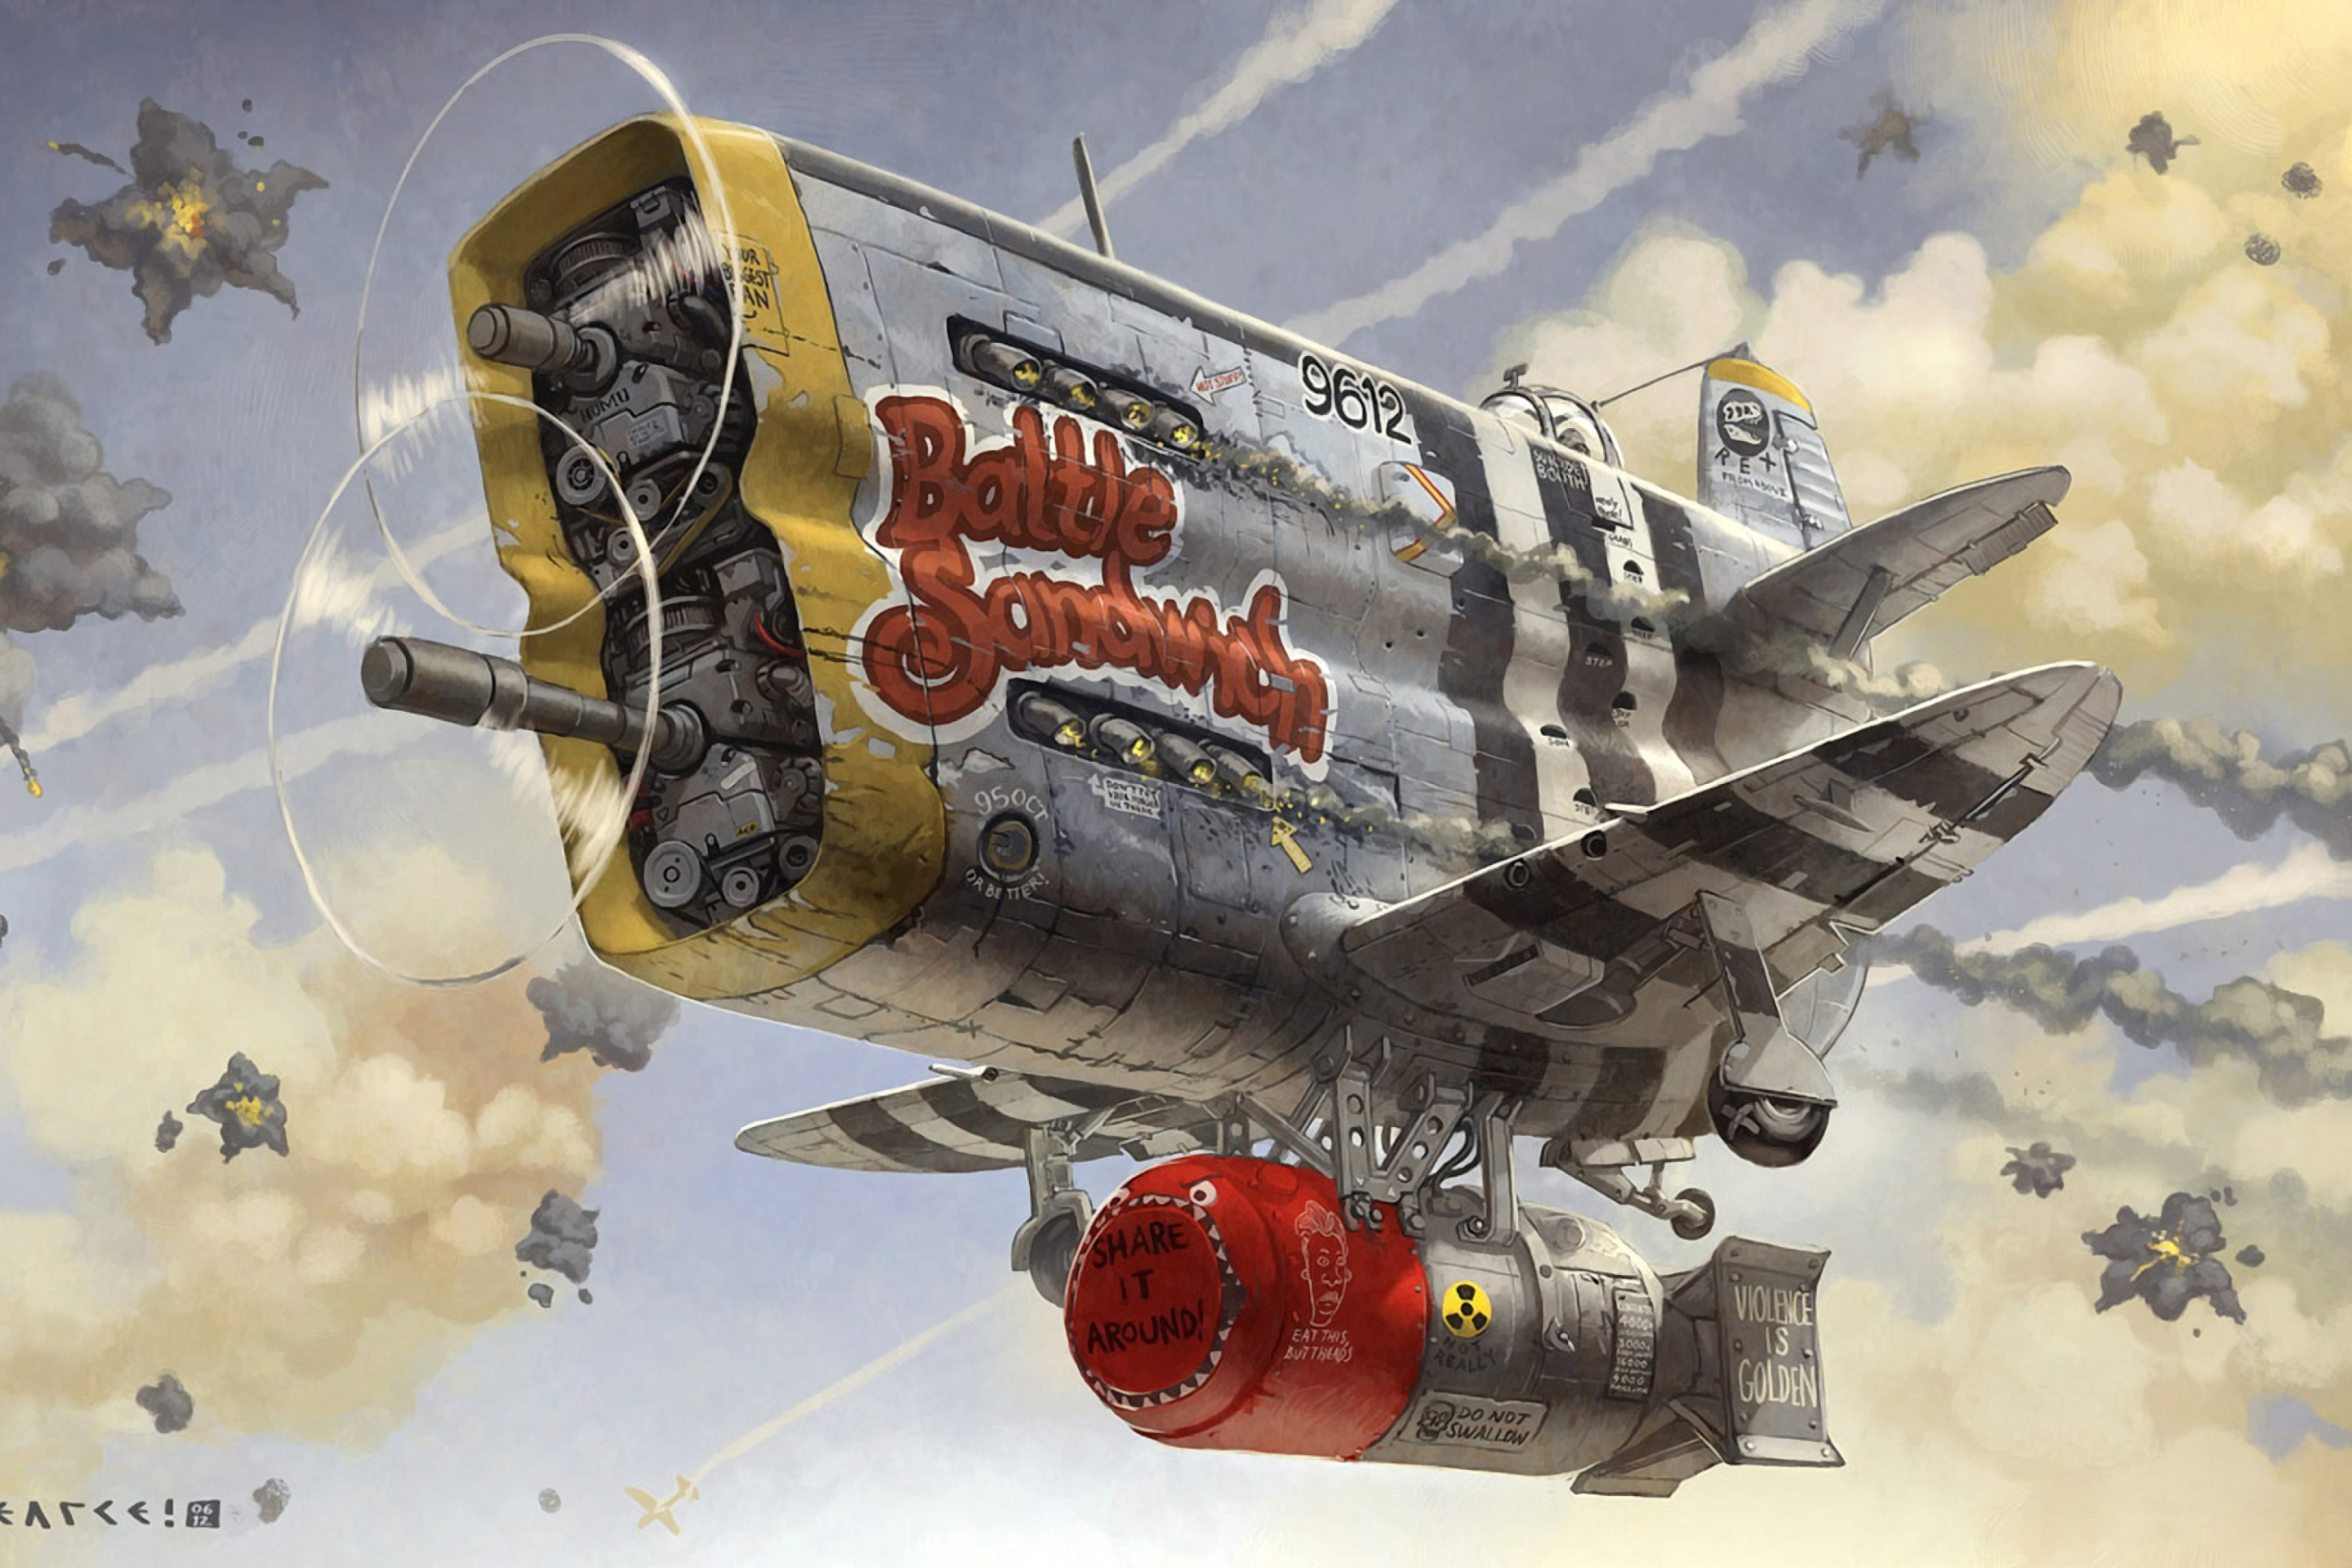 Das Battle Sandwich Airplane Wallpaper 2880x1920